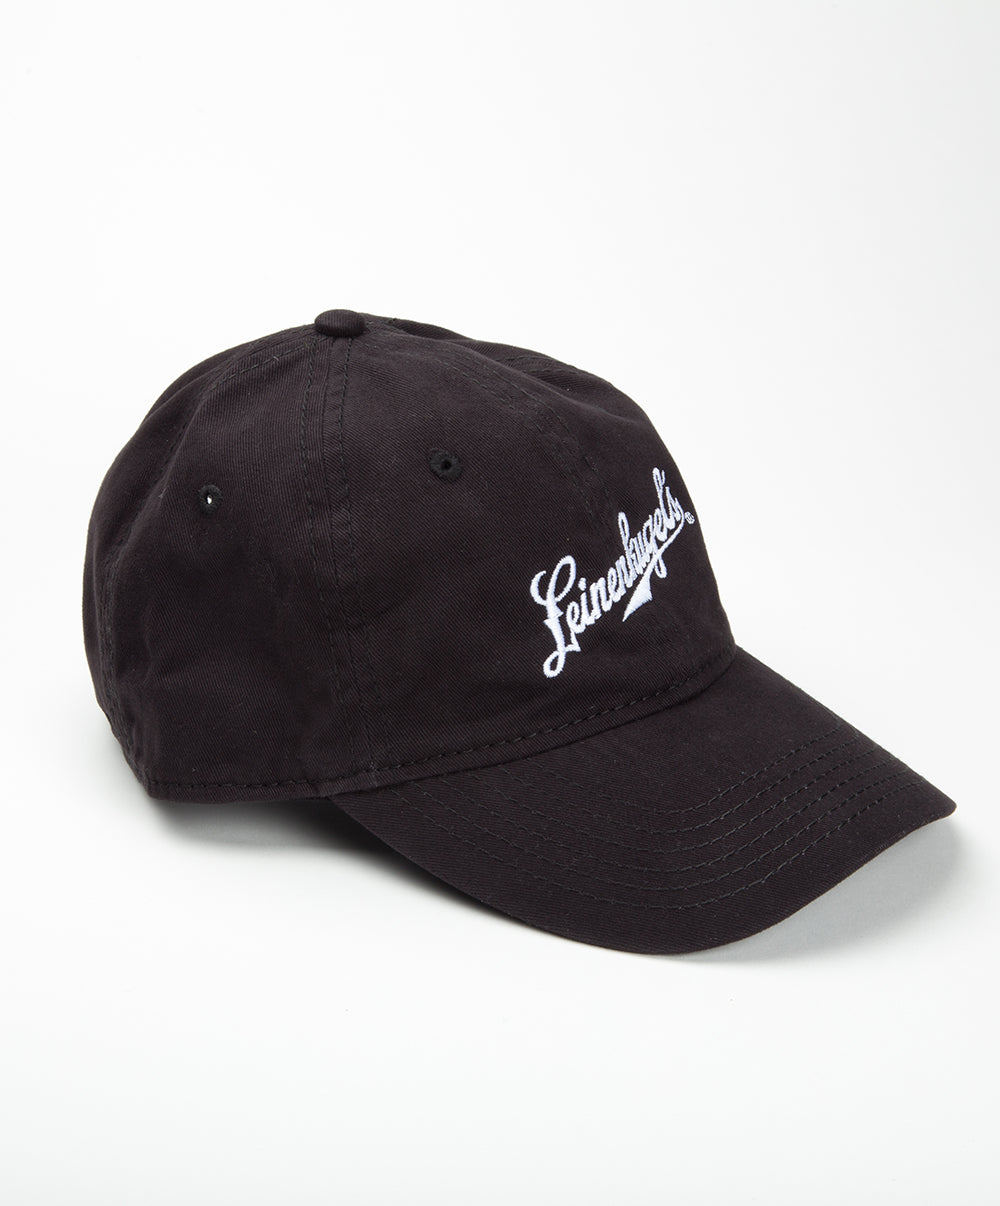 RENEGADE BLACK HAT